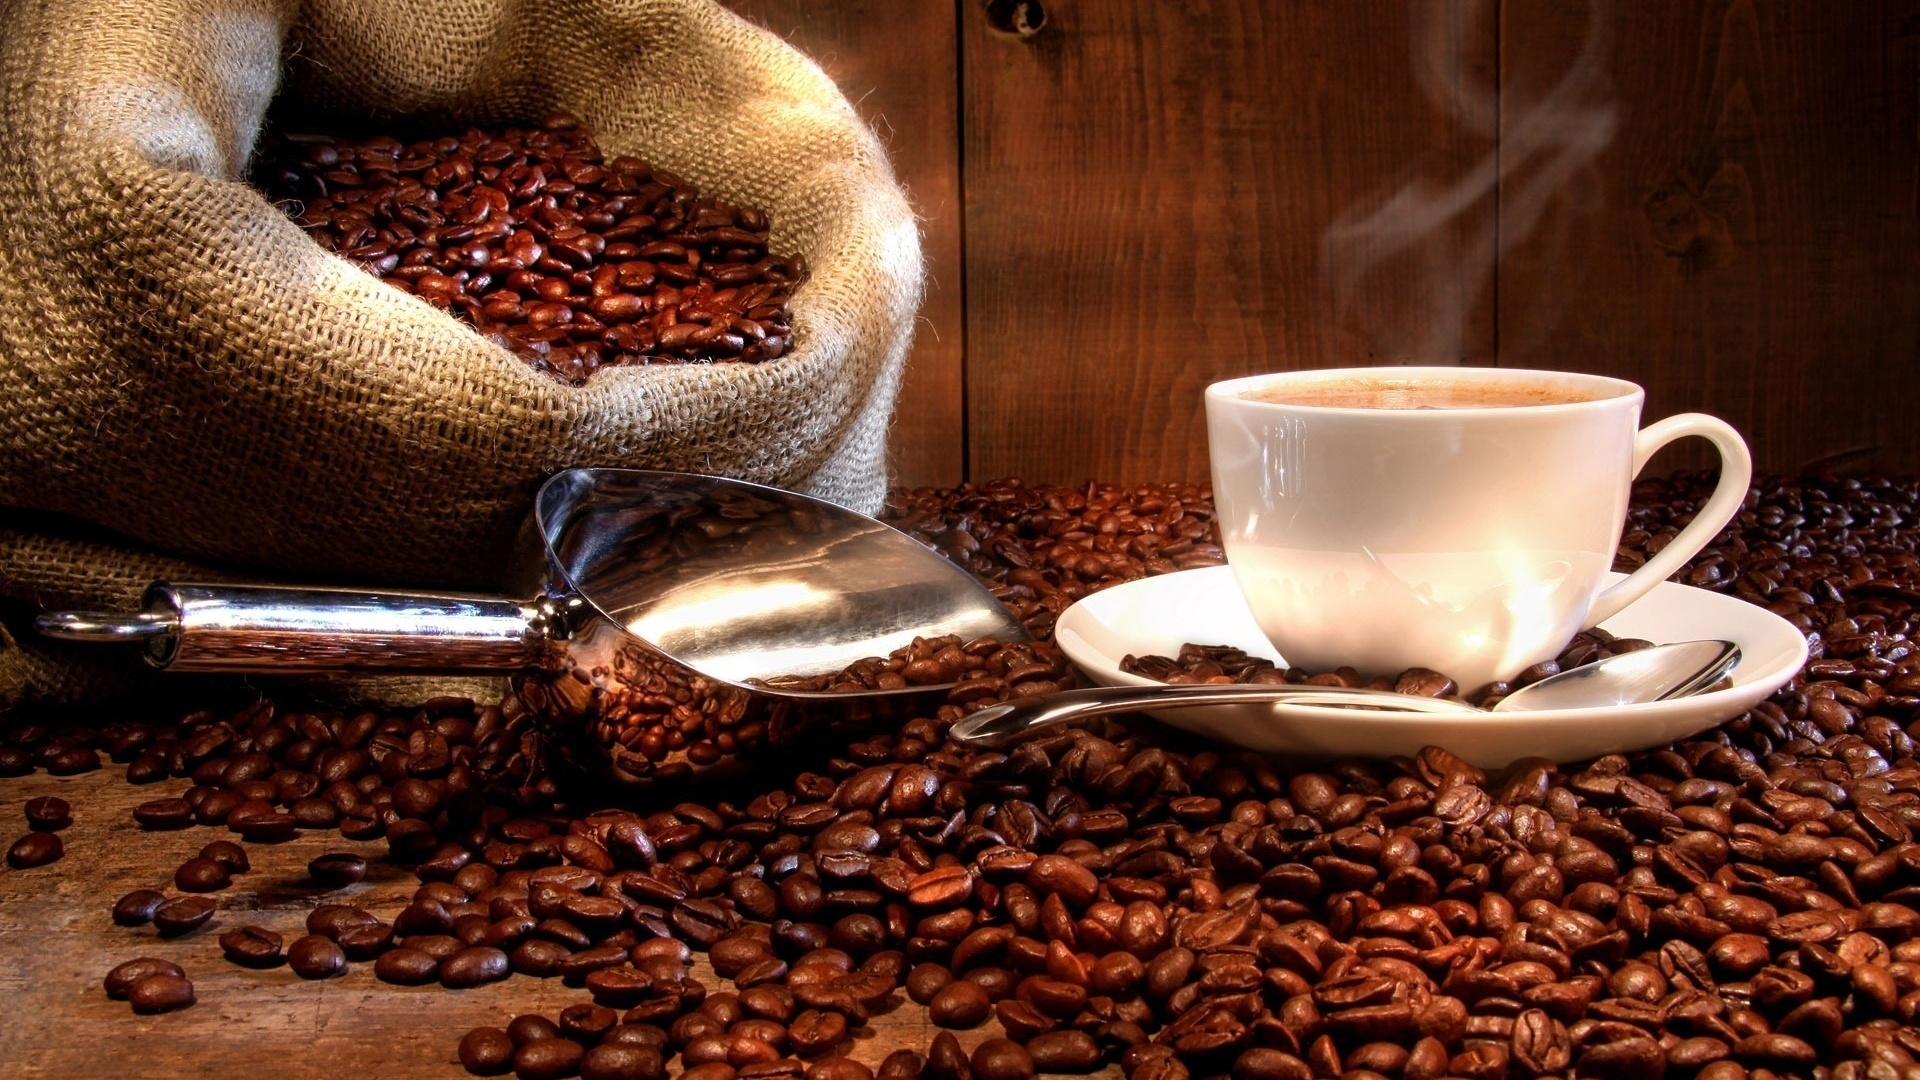 cup-of-coffee-coffee-beans-hd-wallpapers